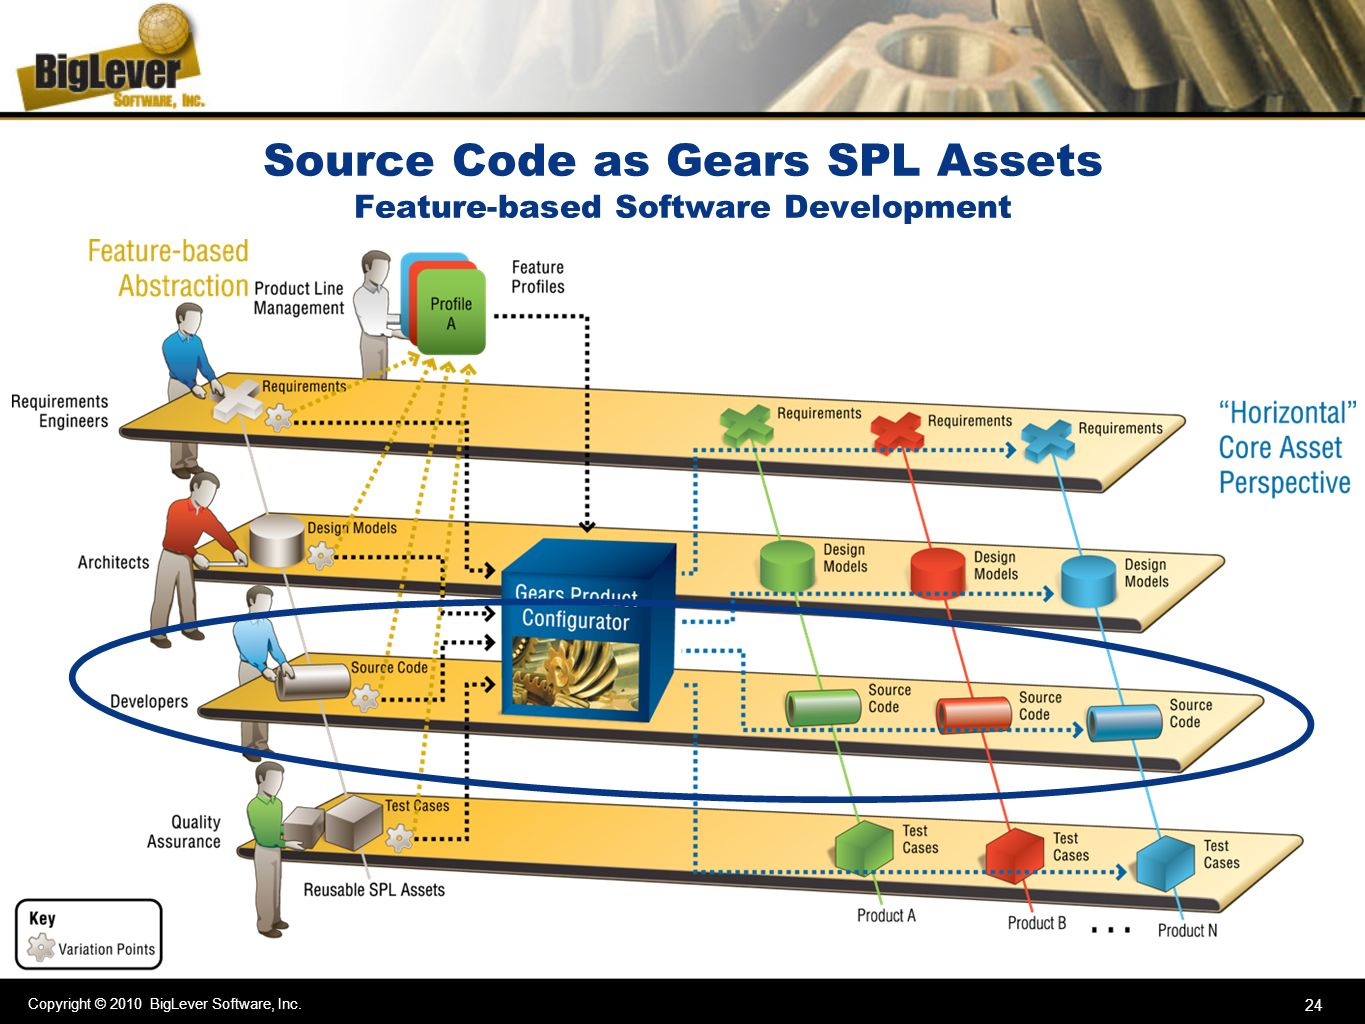 Source Code as Gears SPL Assets Feature-based Software Development